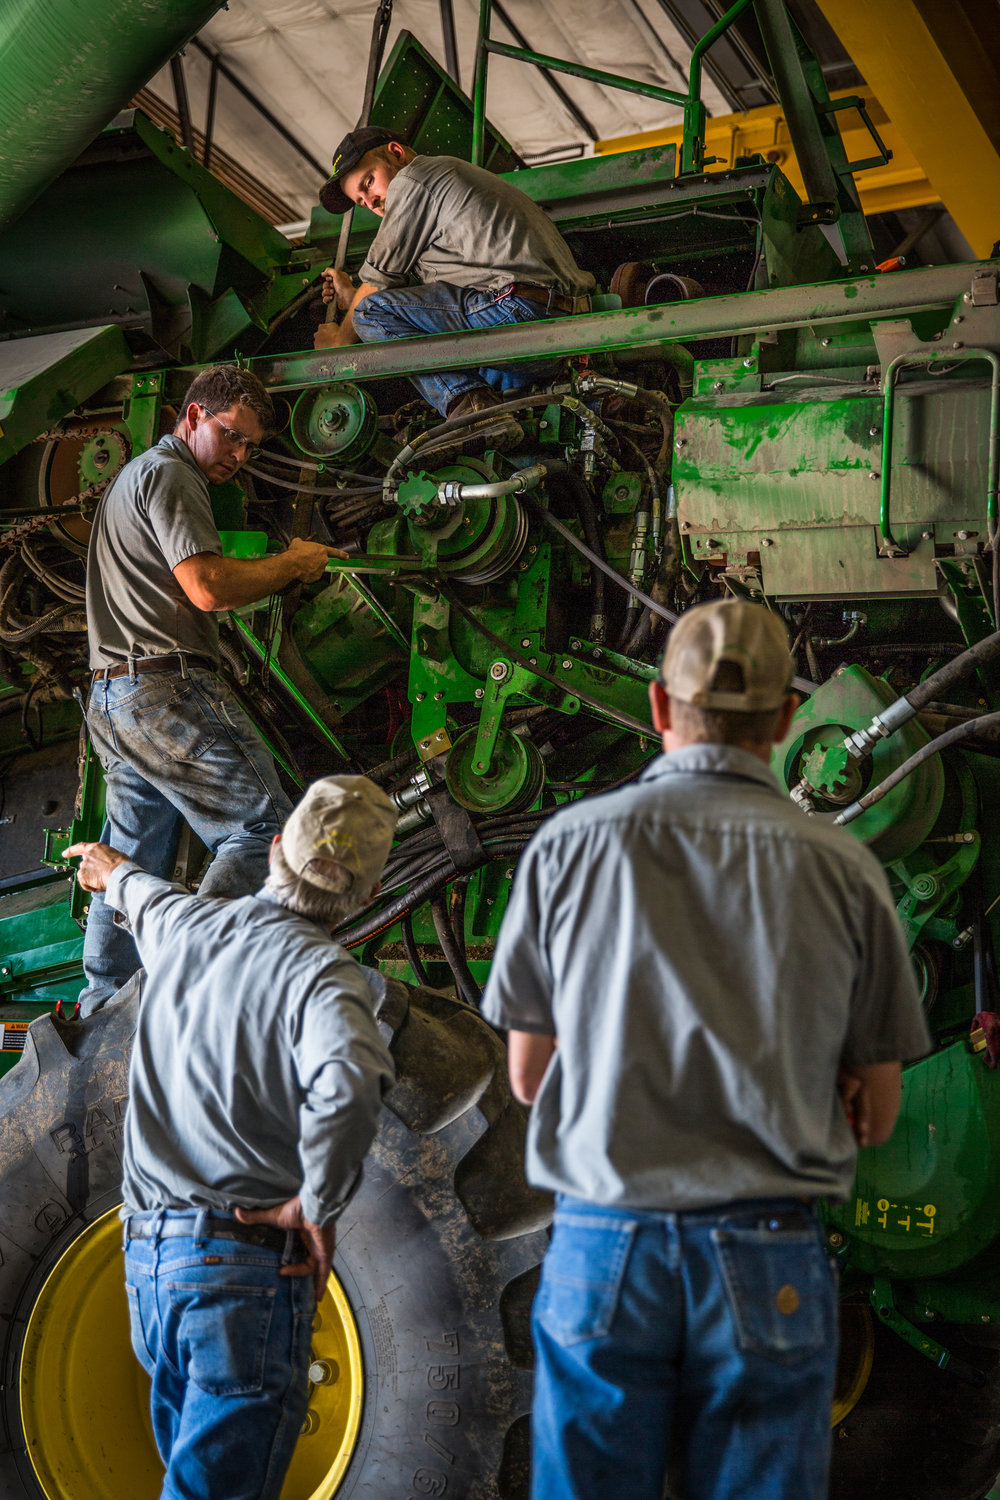 Service technicians work on repairing a combine in the Sydenstricker John Deere dealership in Mexico, Missouri on Tuesday, Oct. 4, 2016.